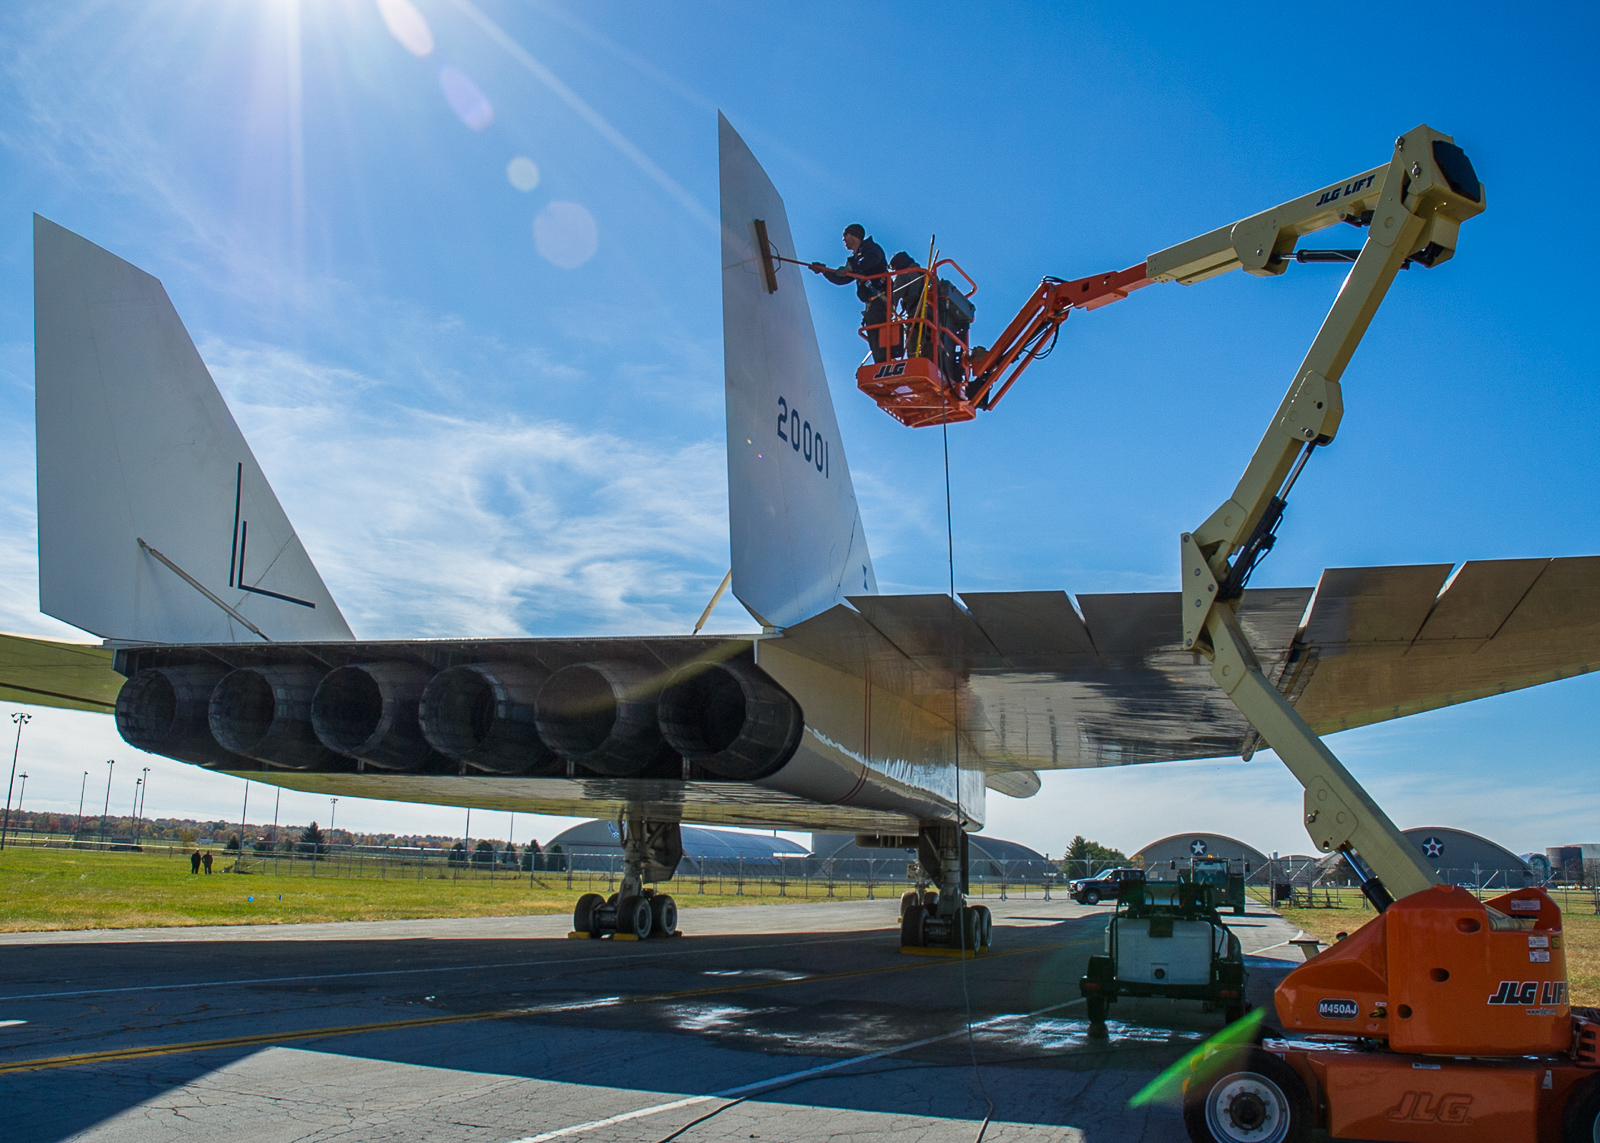 Cleaning the Valkyrie. (NMUSAF photo by Ken LaRock)